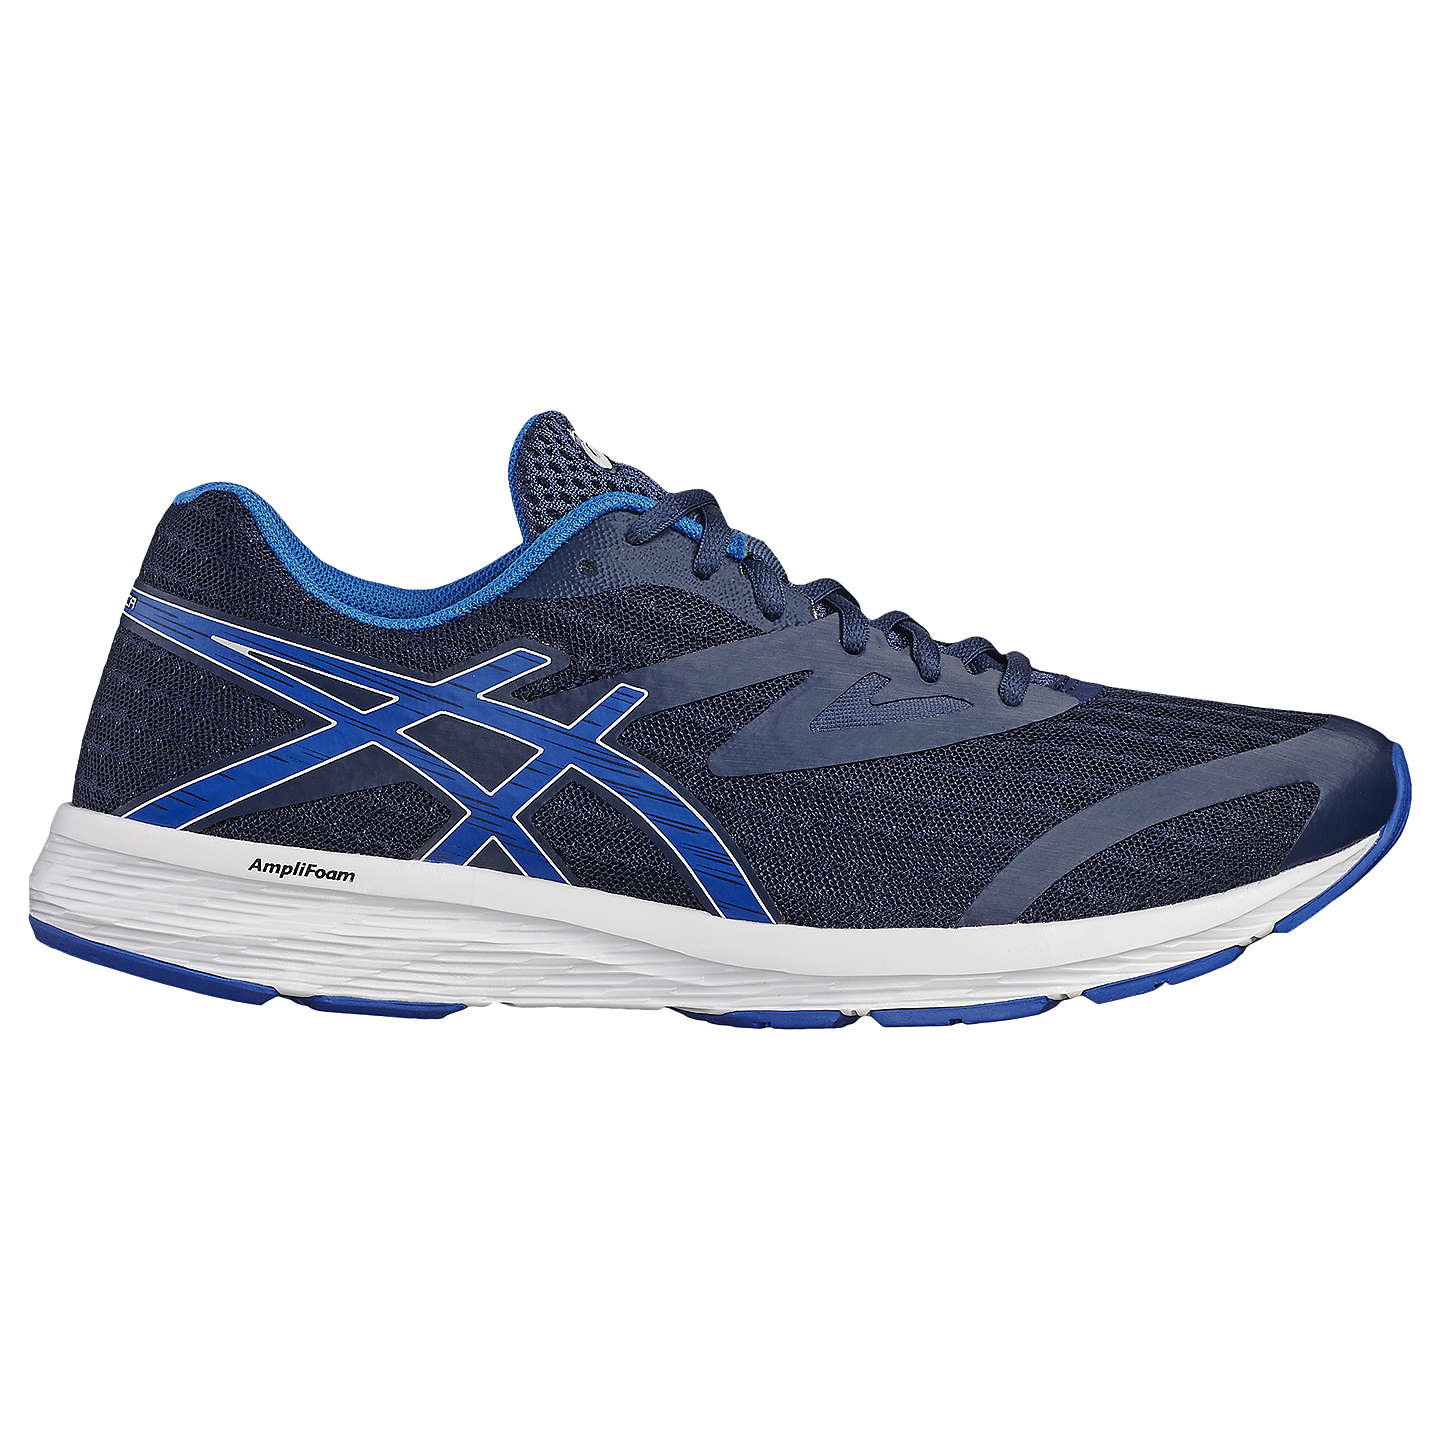 best asics shoes 2016 teenagers movies mama 679893